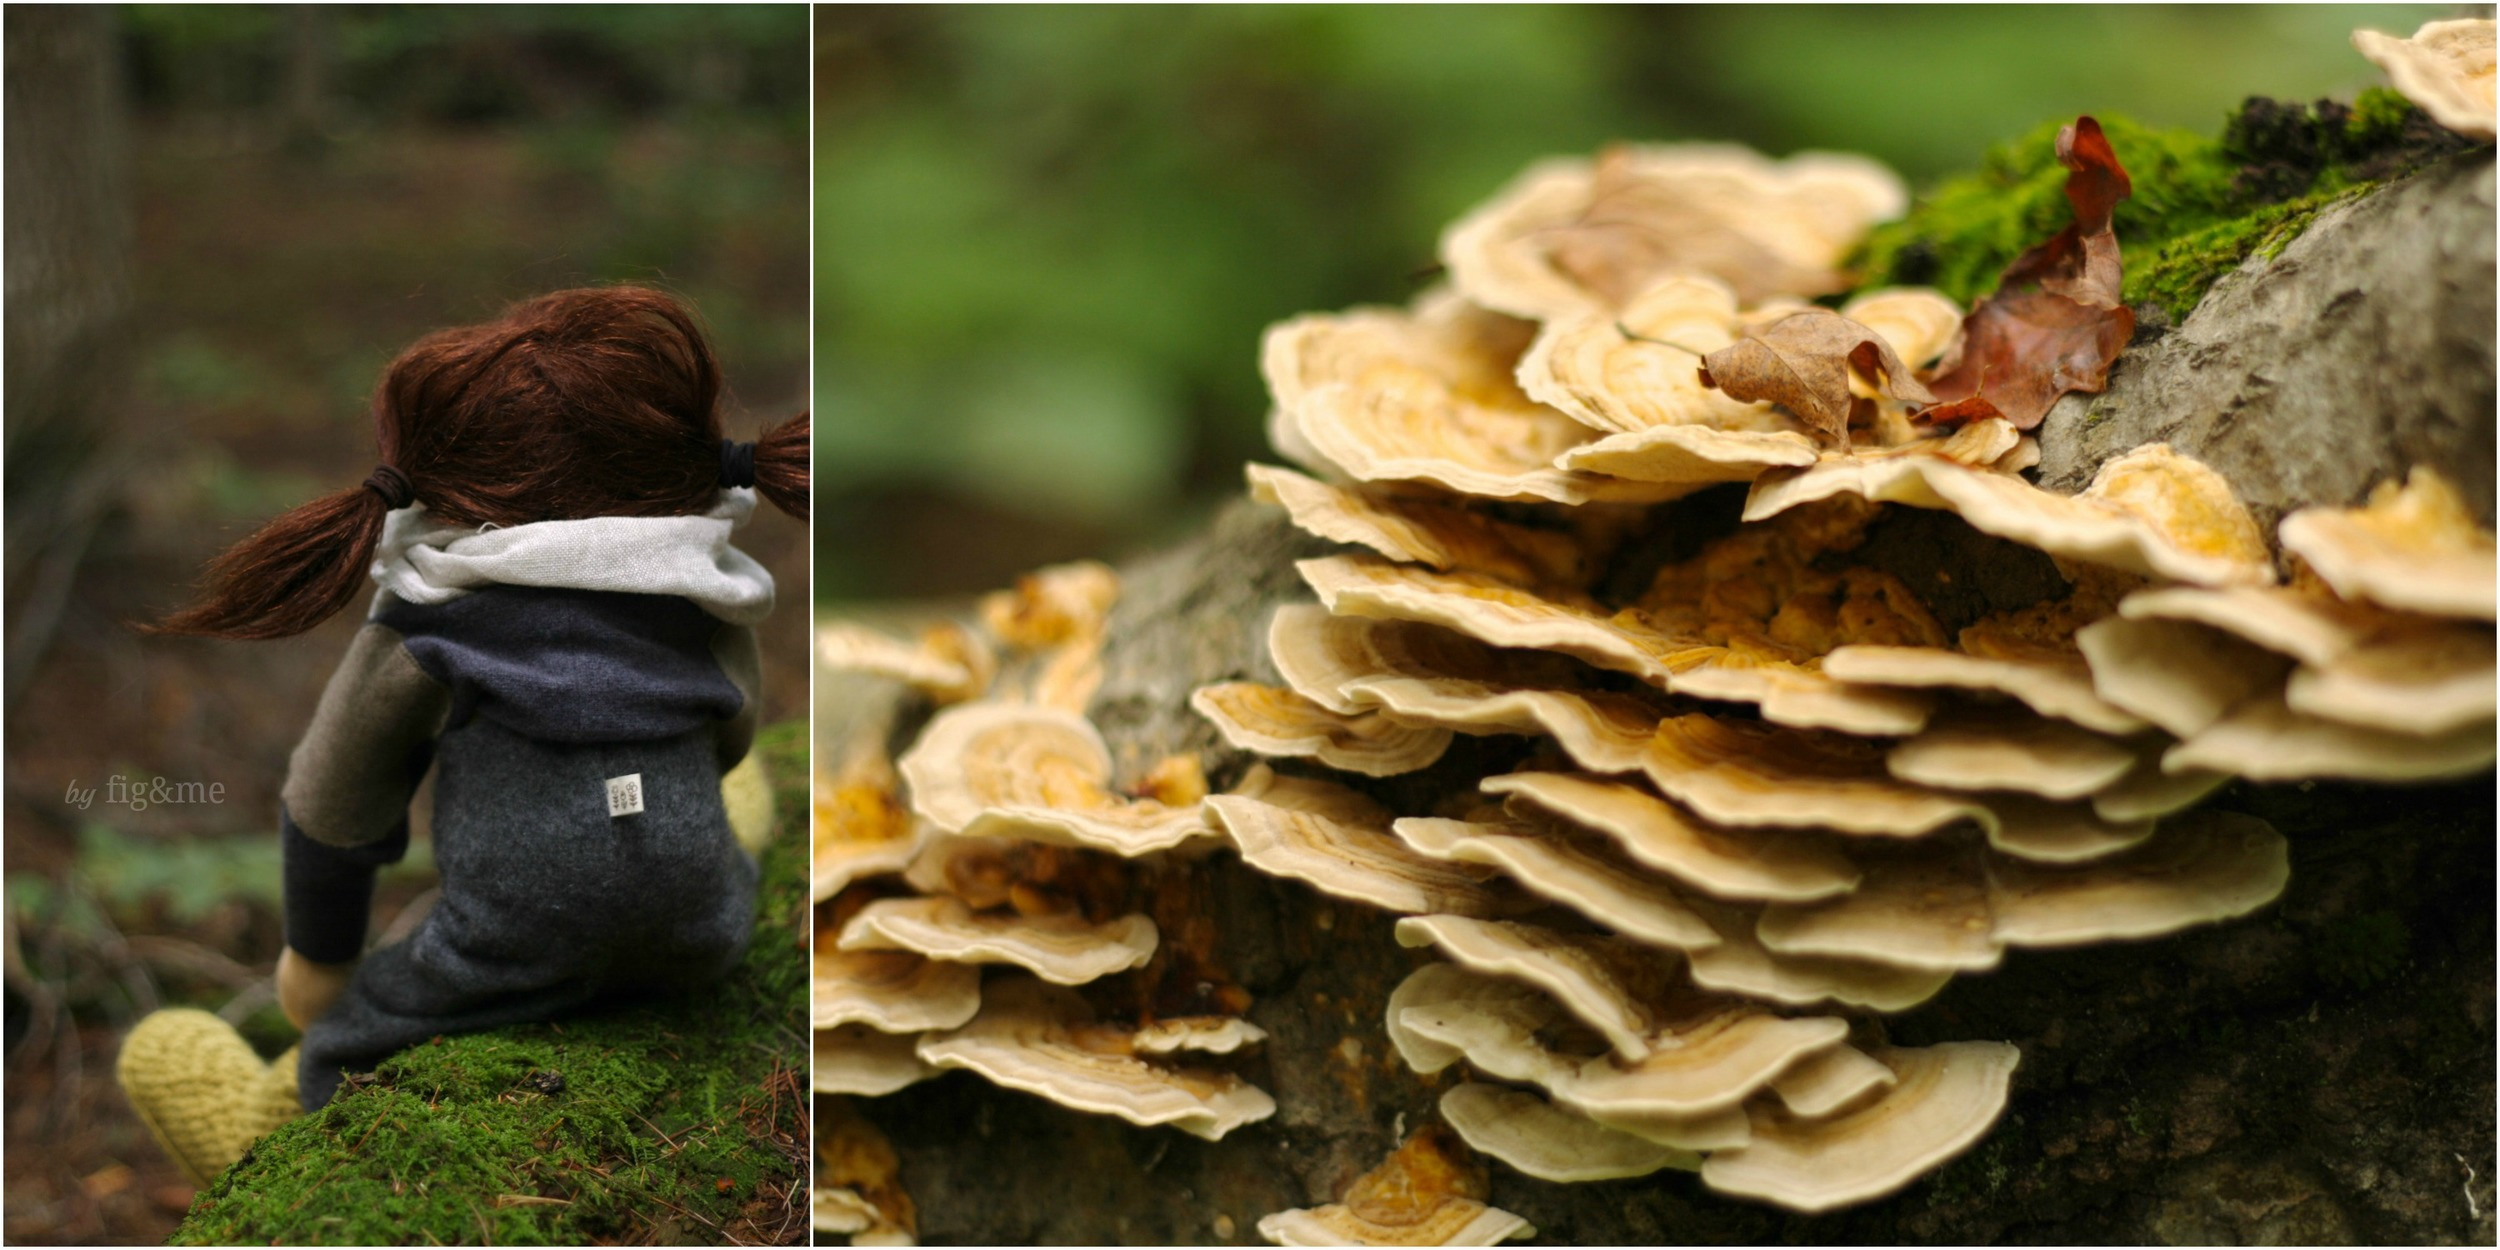 Olivia and the fungi, by Fig and me.